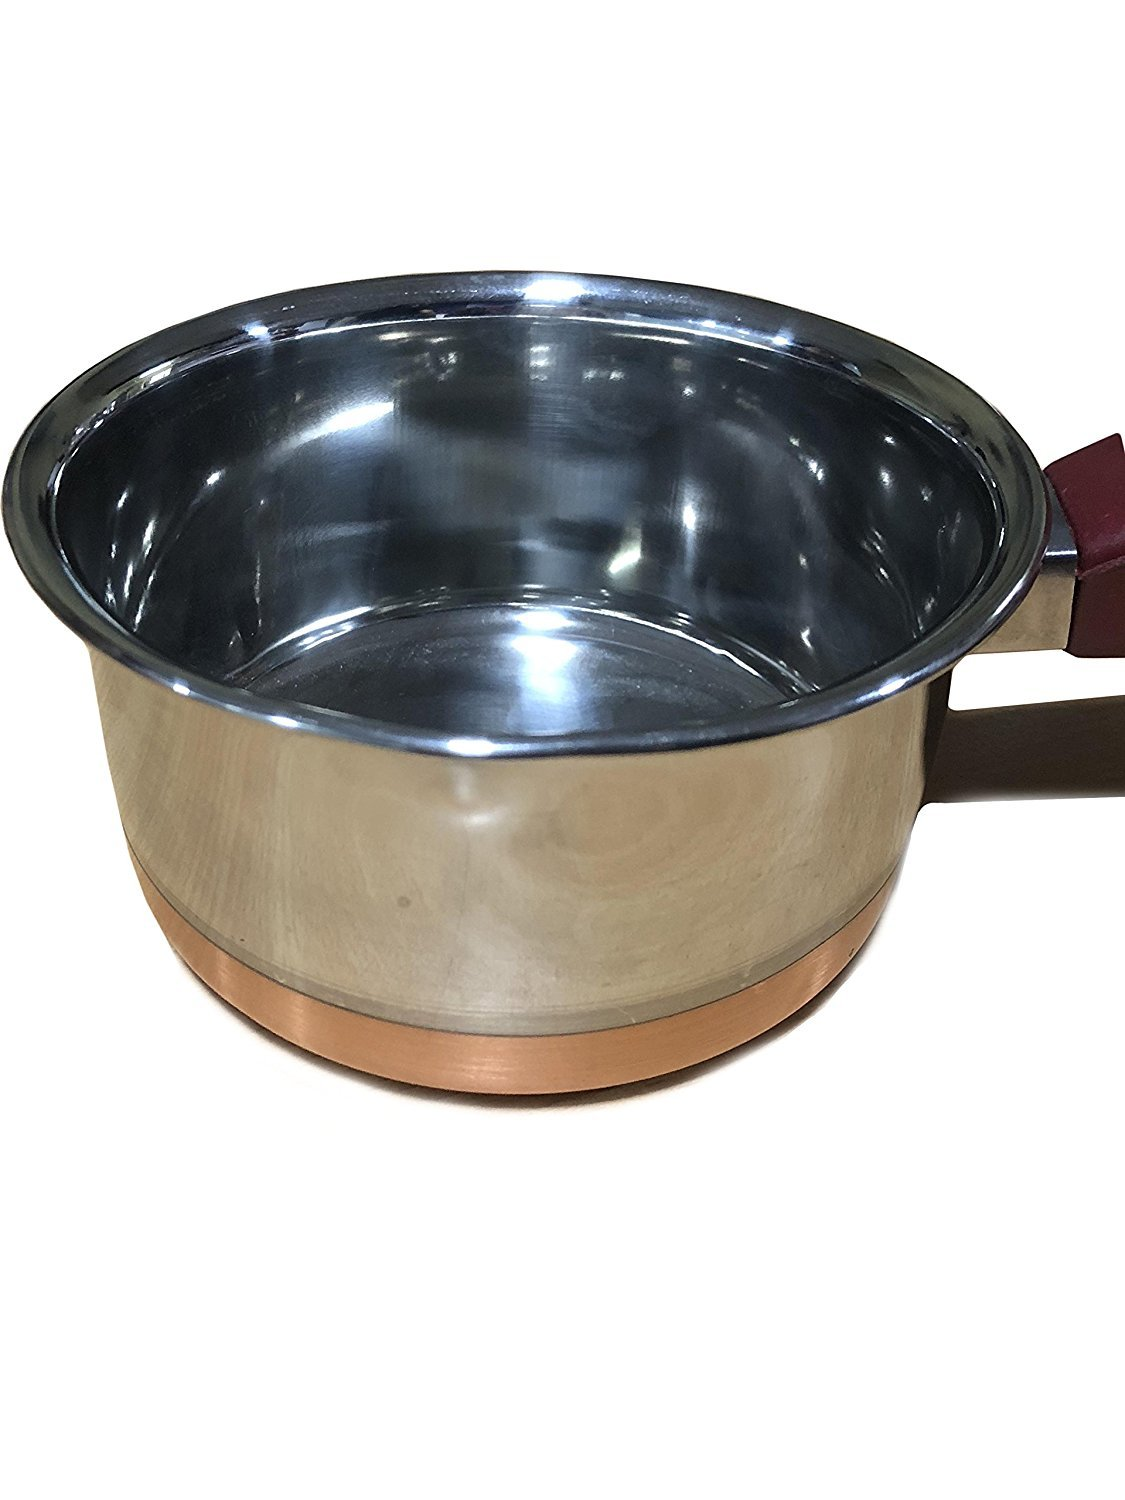 Stainless Steel Copper Bottom Saucepan/Cookware/Container With Handle, Silver Color Size 6 X 6 Inch